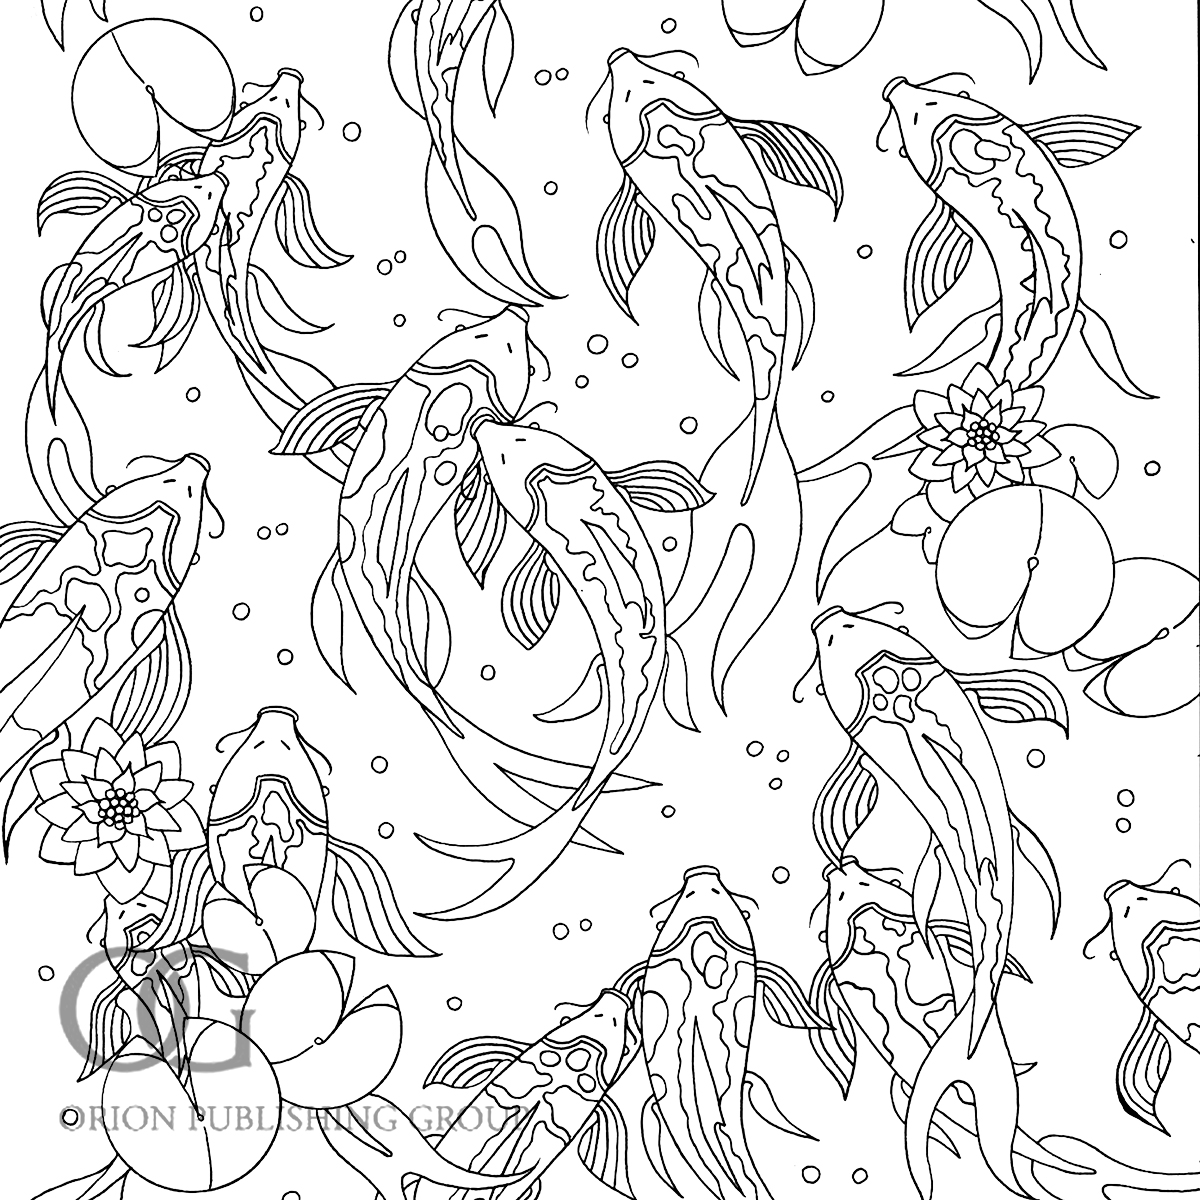 Underwater colouring - You Can Also See Work From My Other Two Books In This Series Colour Me Mindful Birds And Colour Me Mindful Tropical In My Portfolio